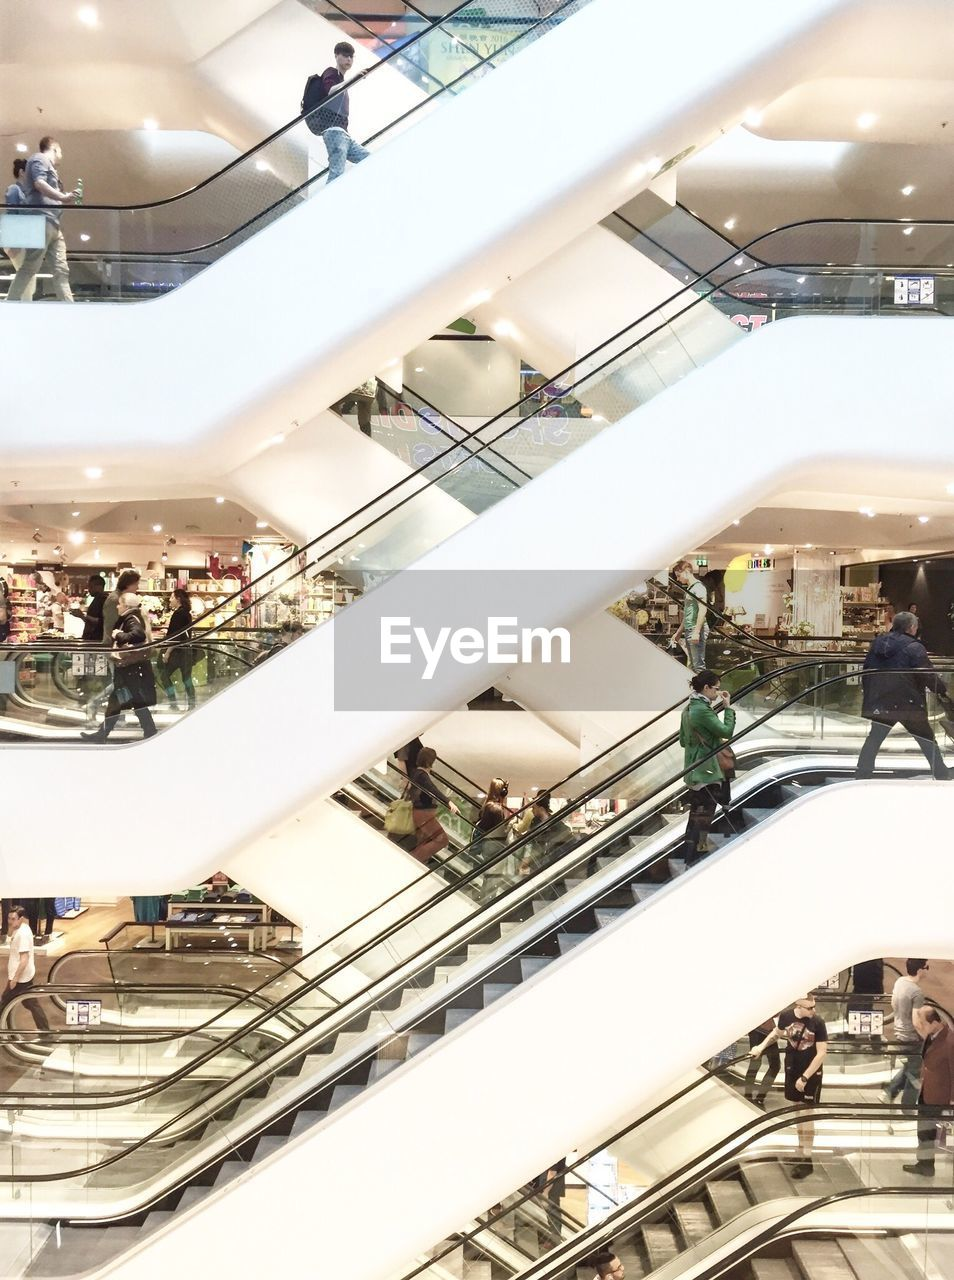 People On Escalators In Shopping Mall